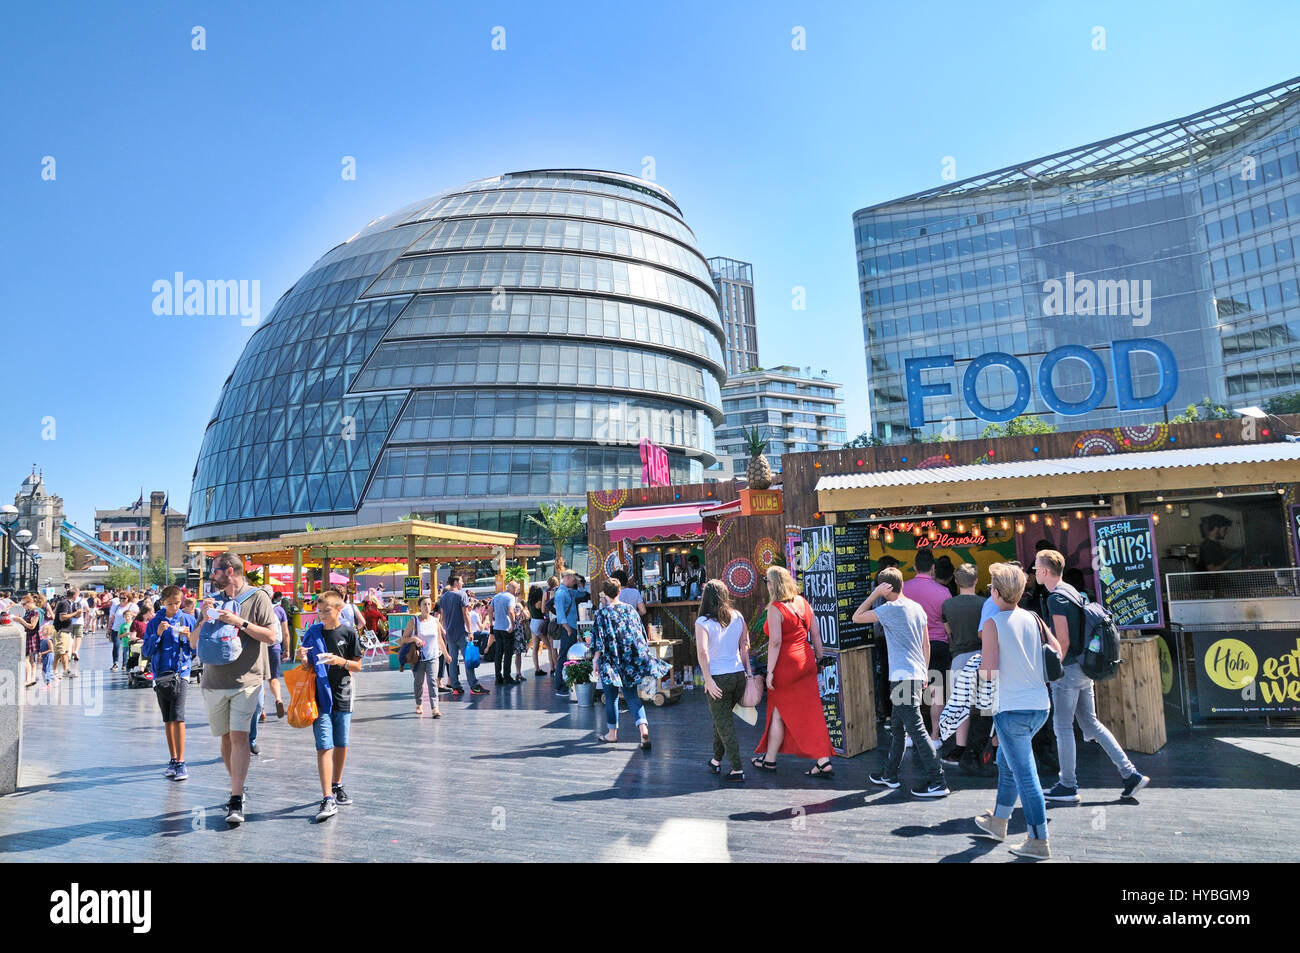 More London Riverside and City Hall.  People enjoying the summer weather and food stalls in the capital. Stock Photo